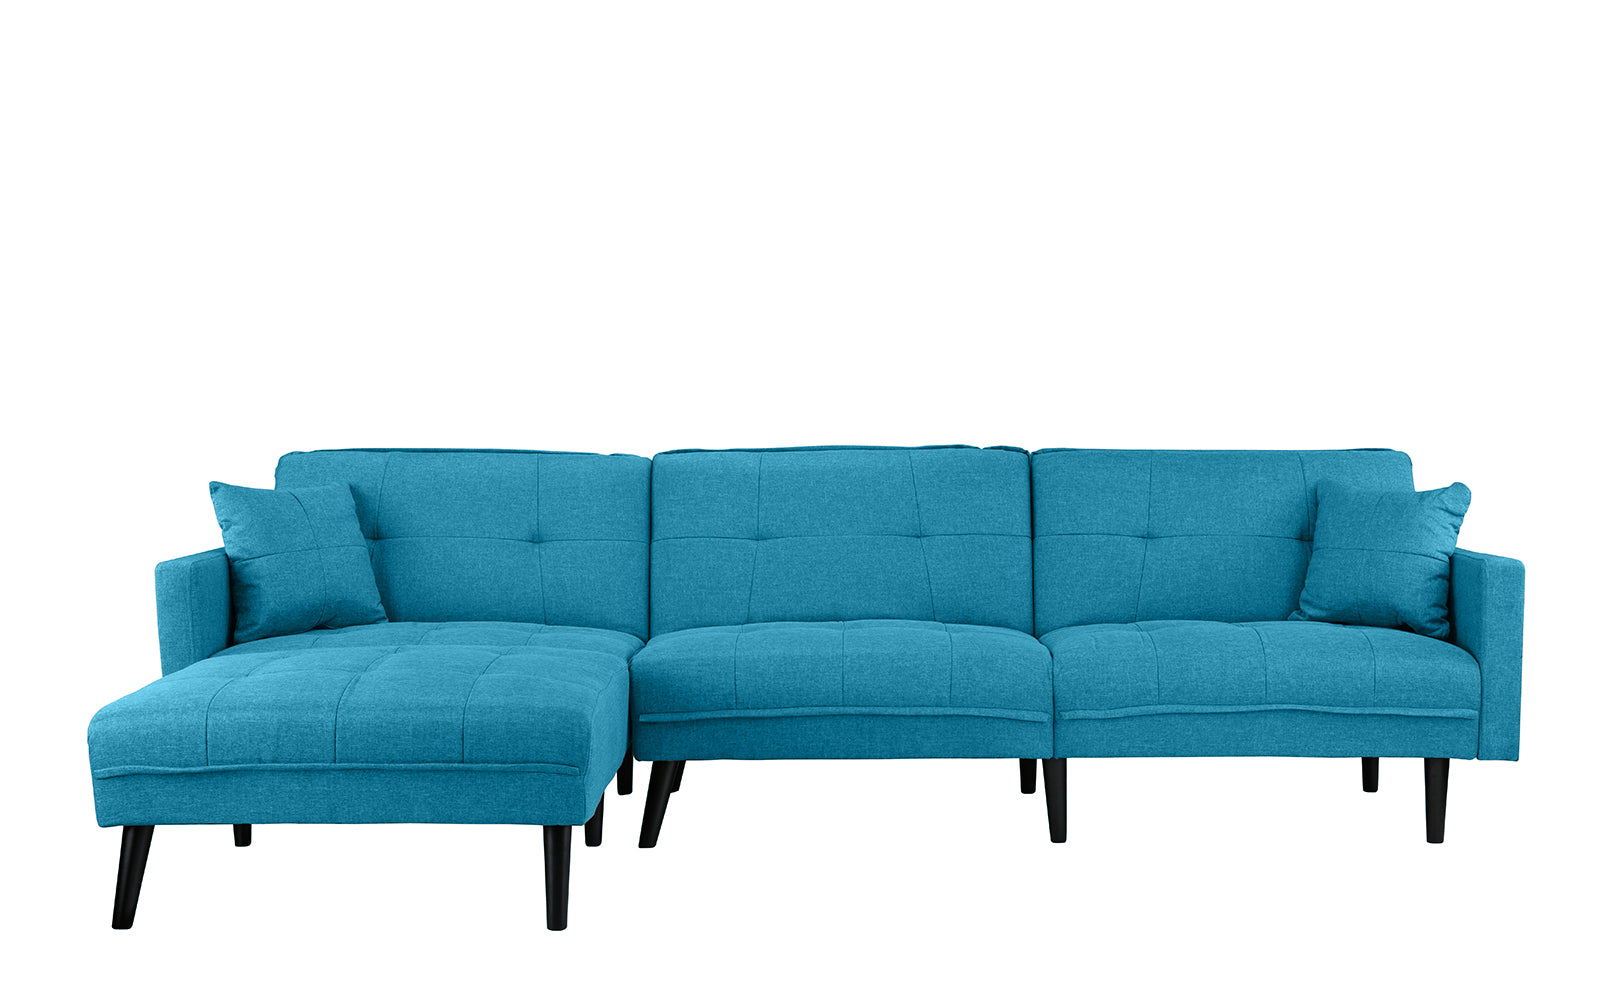 Romulo Mid-Century Modern Linen Sleeper Sectional Sofa with Chaise